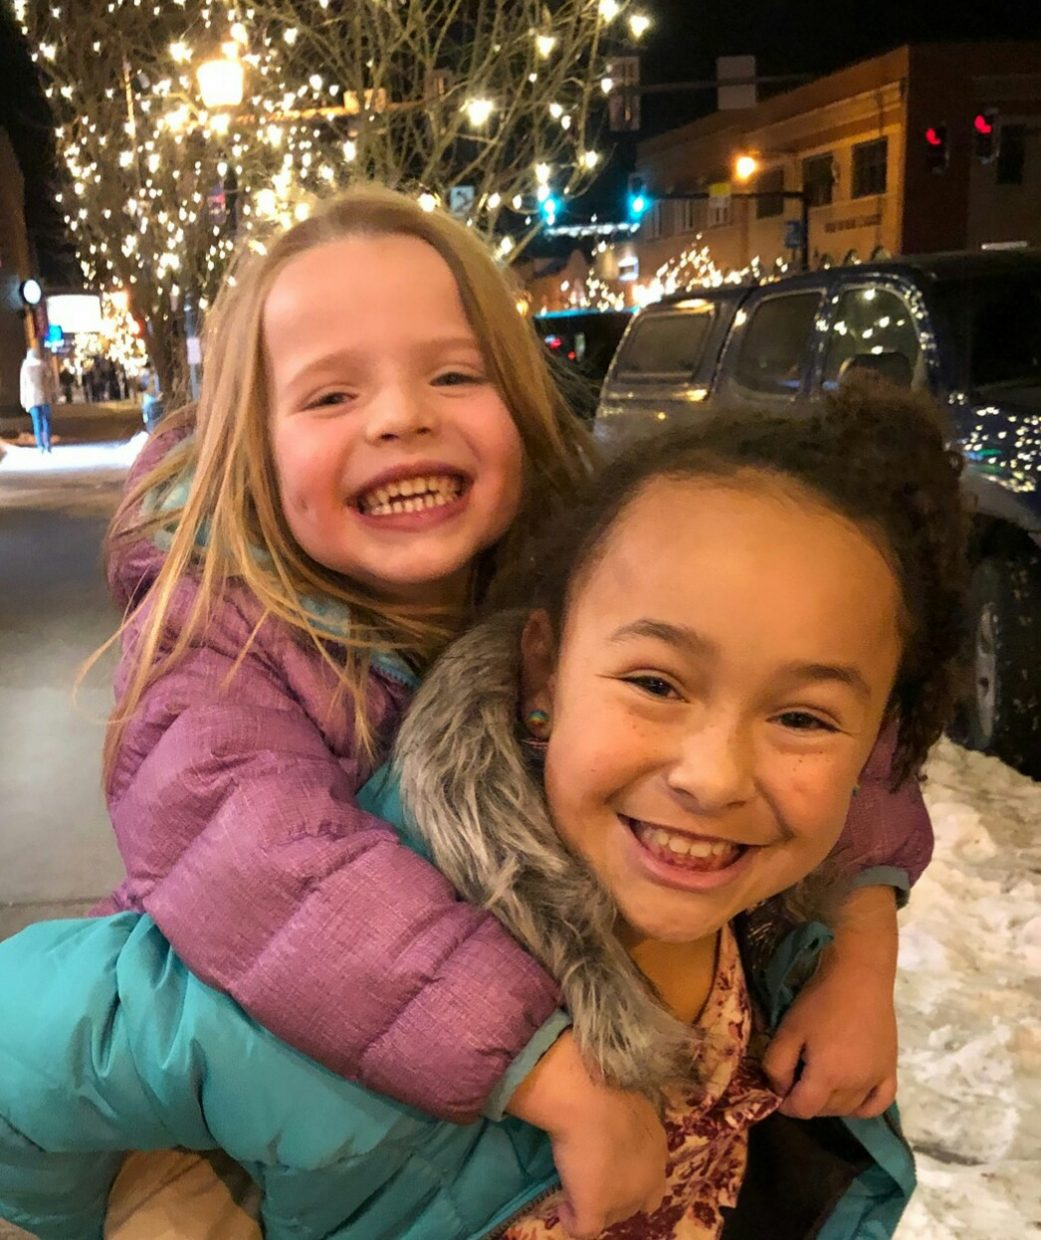 Two girls enjoy time in downtown Steamboat Springs, which is slowly being decorated for the winter season.